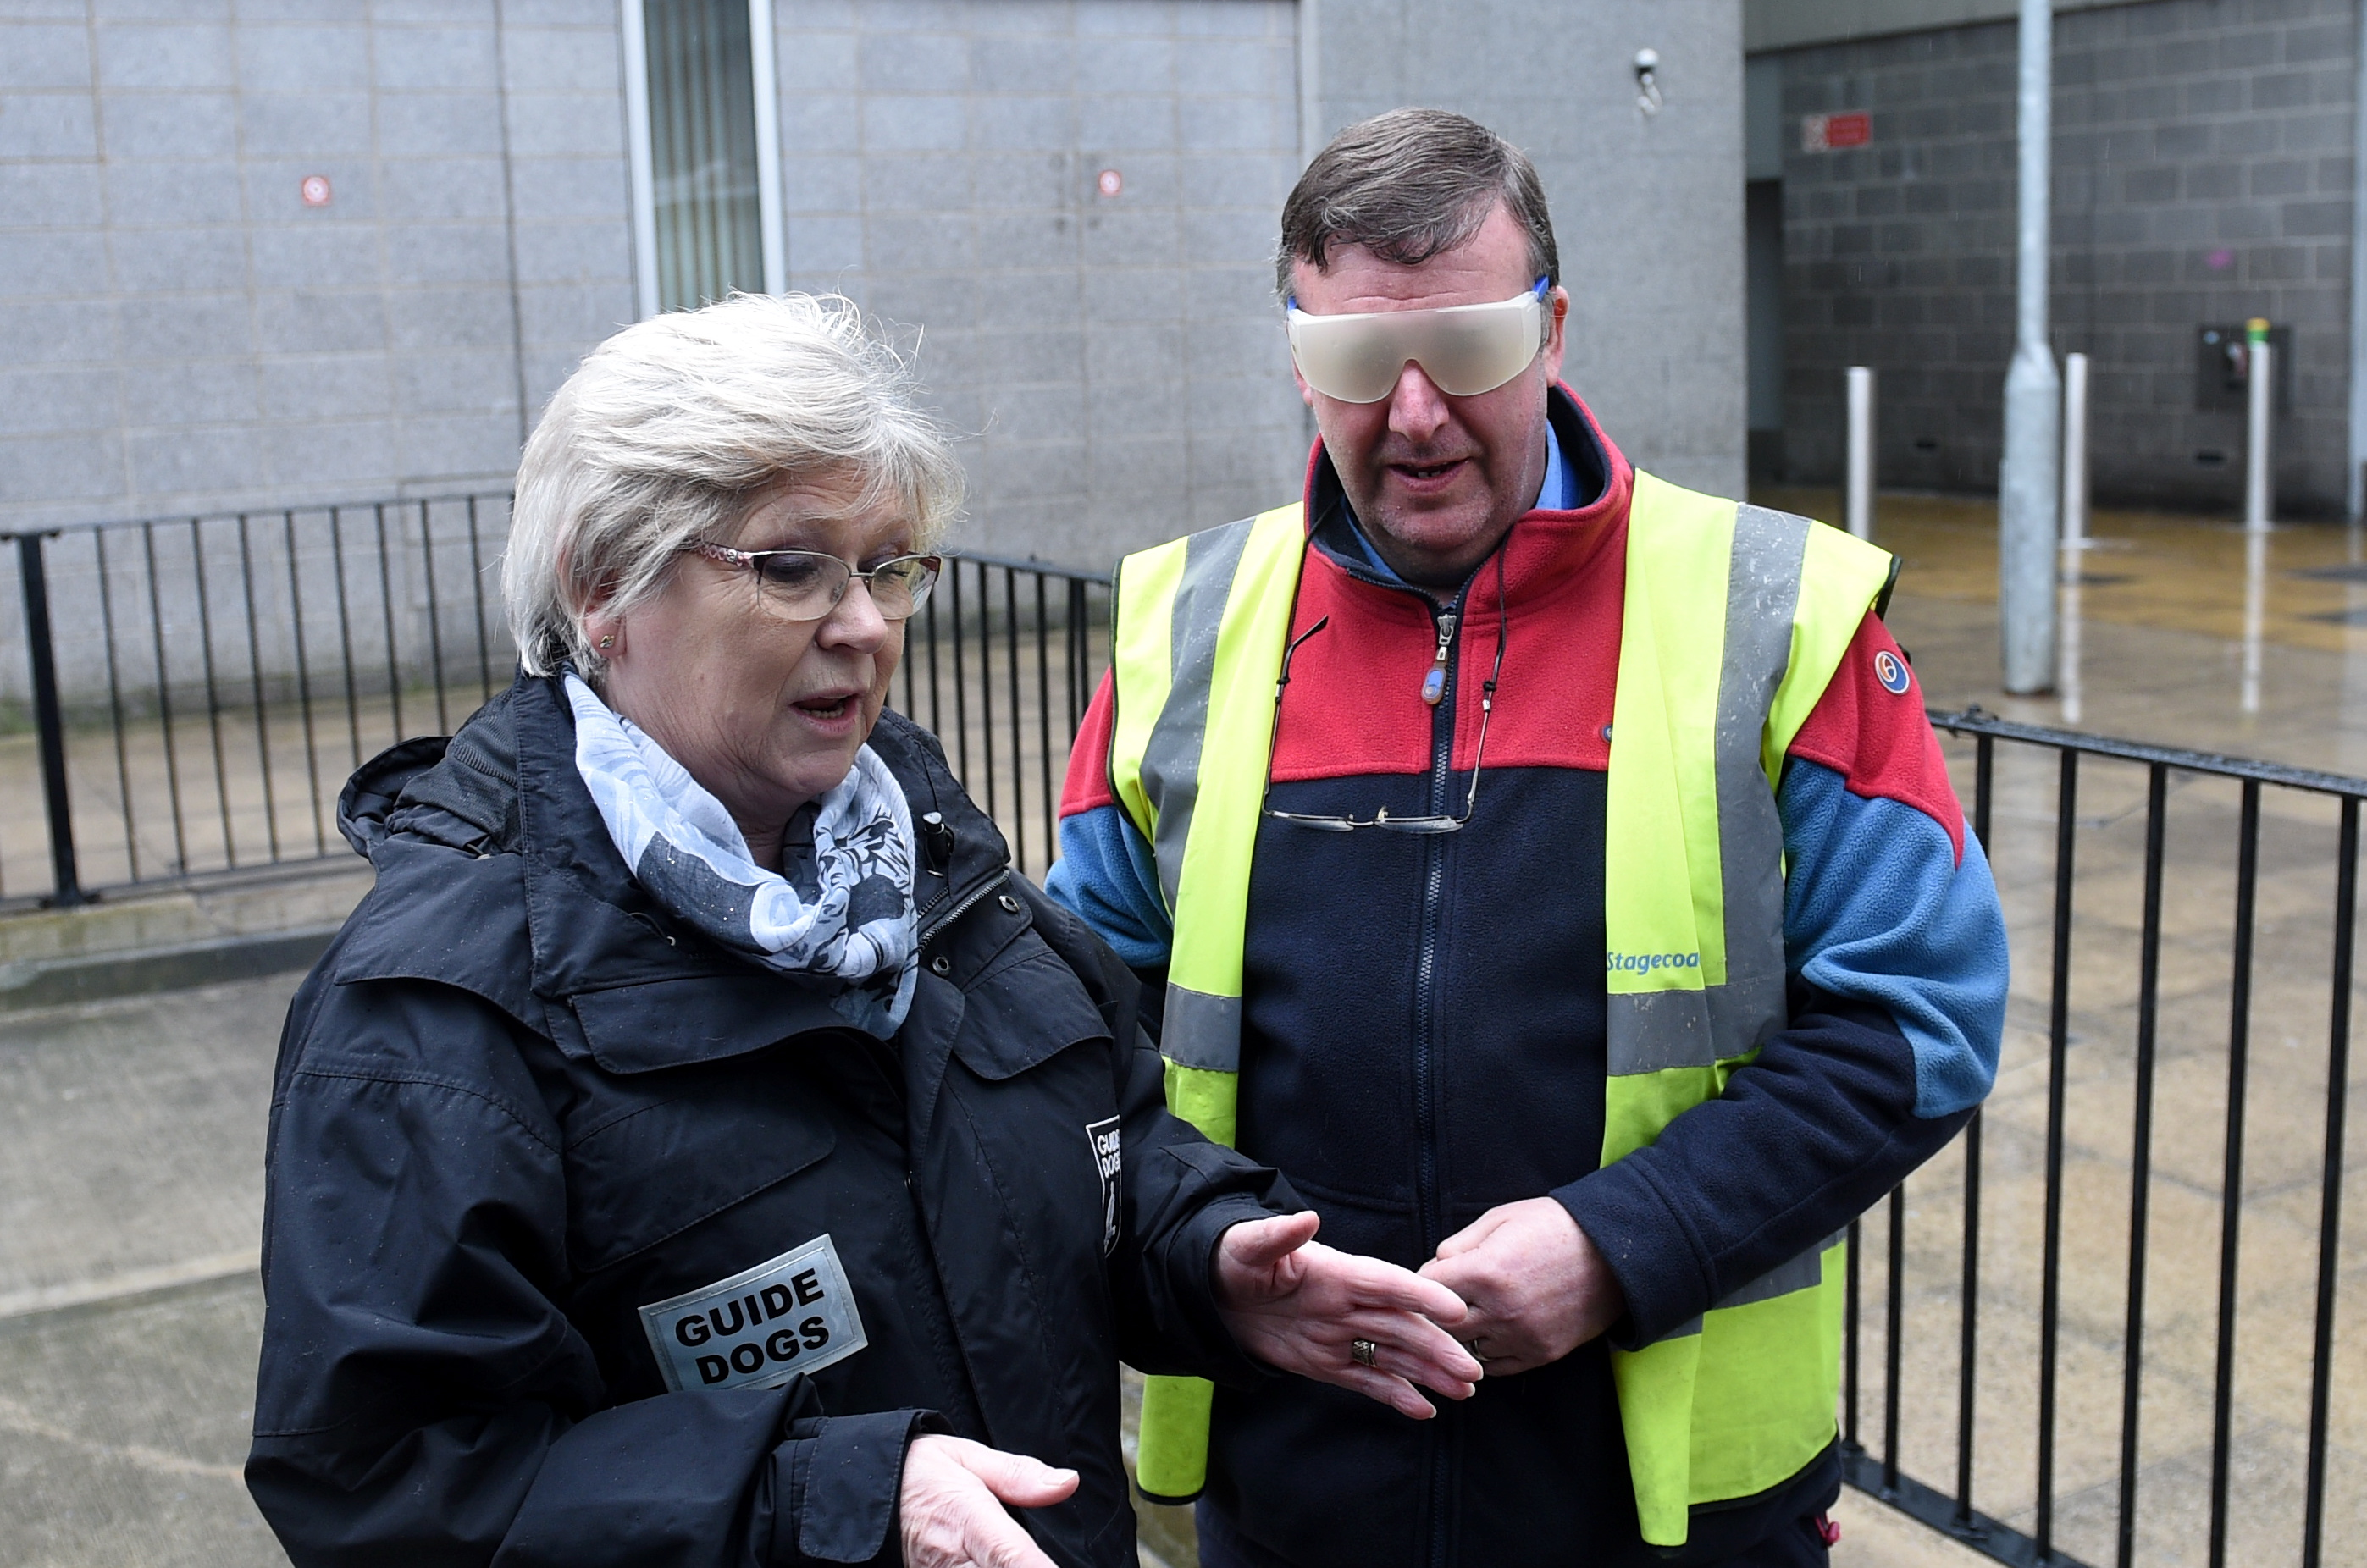 Pamela Munro, engagement officer for Guide Dogs Scotland, and Keith Boyd, Stagecoach bus driver, take part in training sessions at Aberdeen Bus Station.